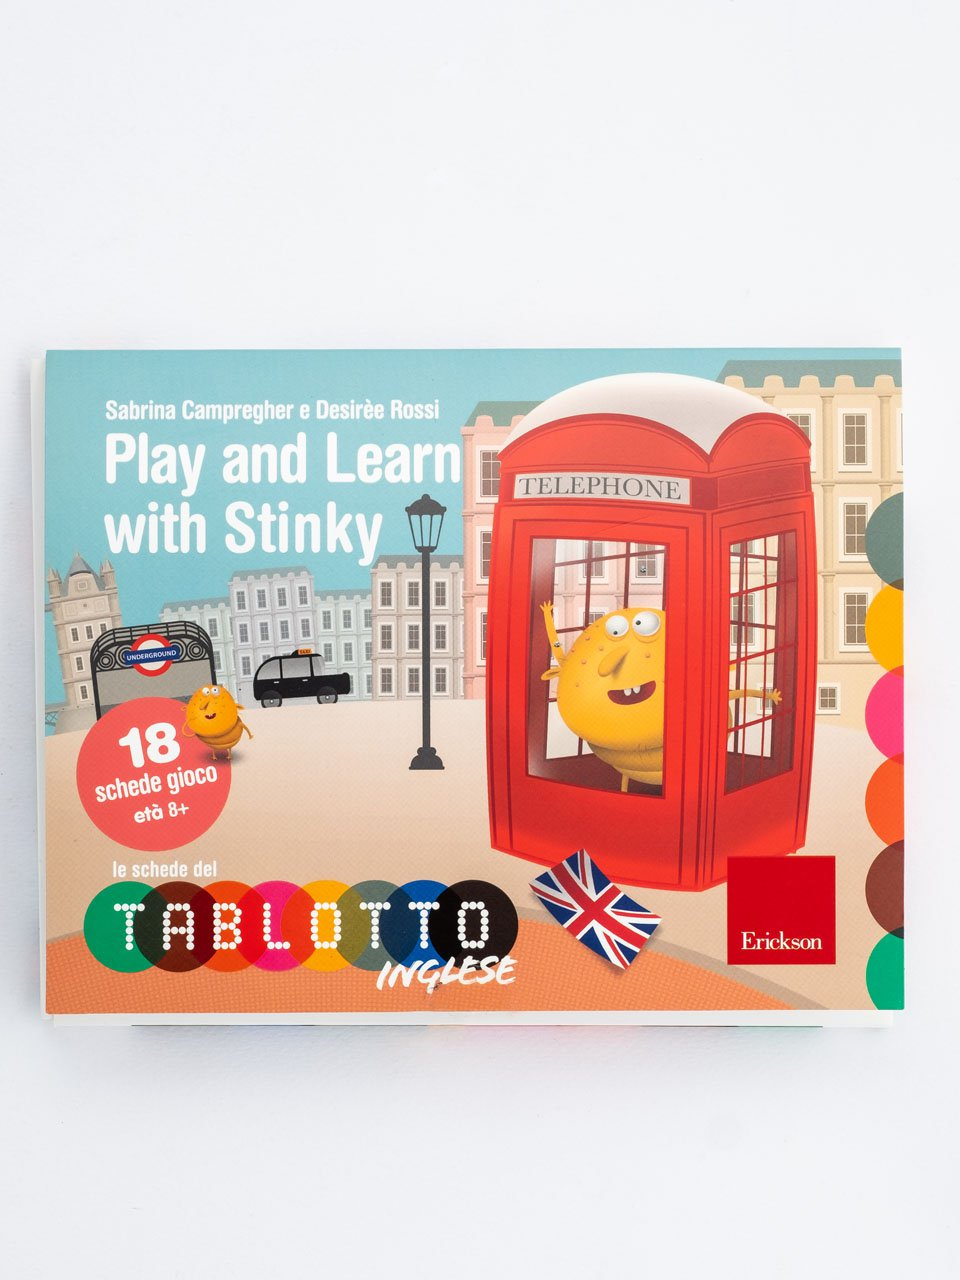 Schede per Tablotto (Età 8+) - Play and Learn with Stinky - Français facile - Libri - App e software - Erickson